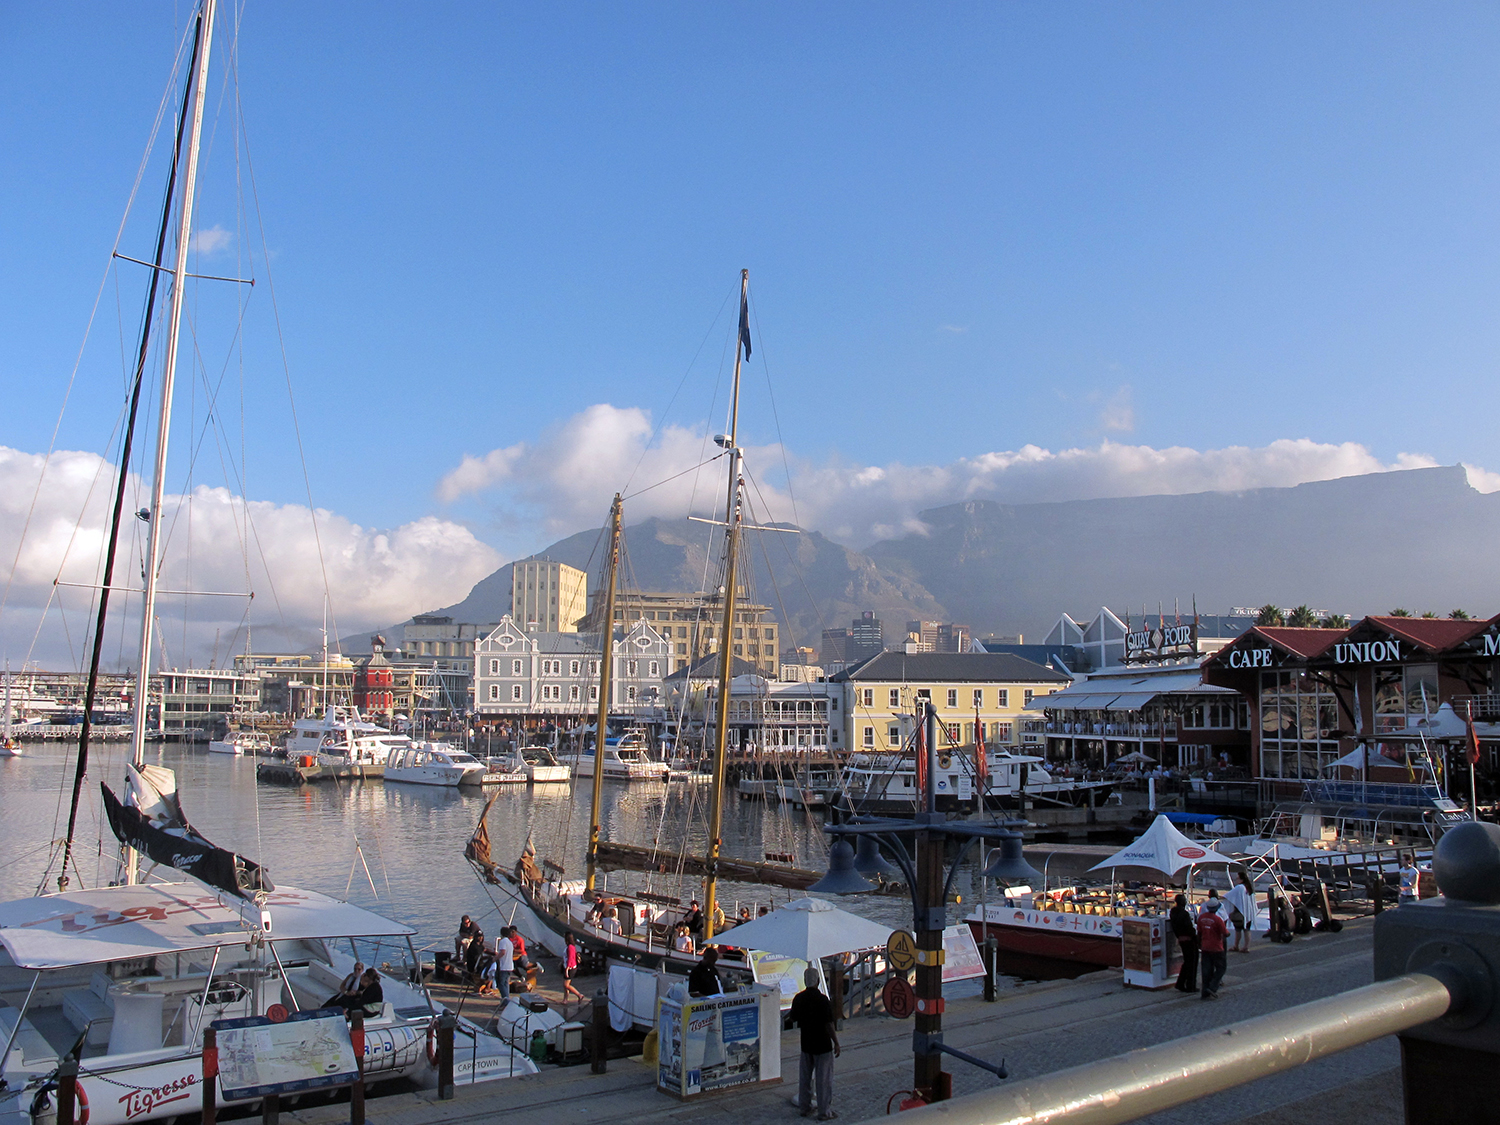 The V & A Waterfront